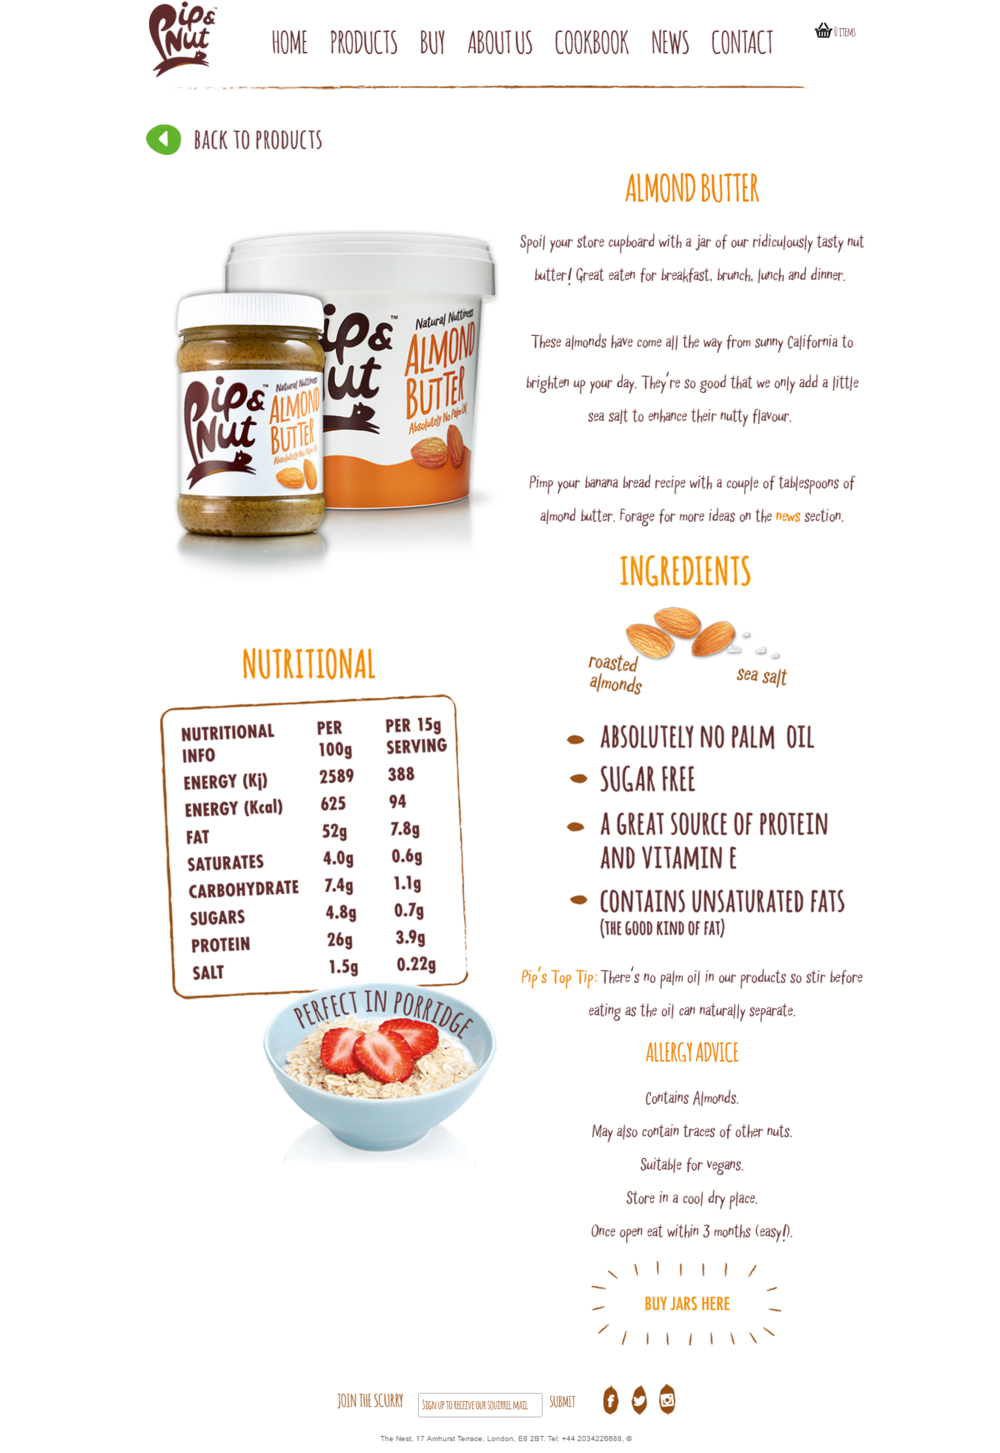 Pip & Nut will sell you almond butter the way only Pip & Nut can.